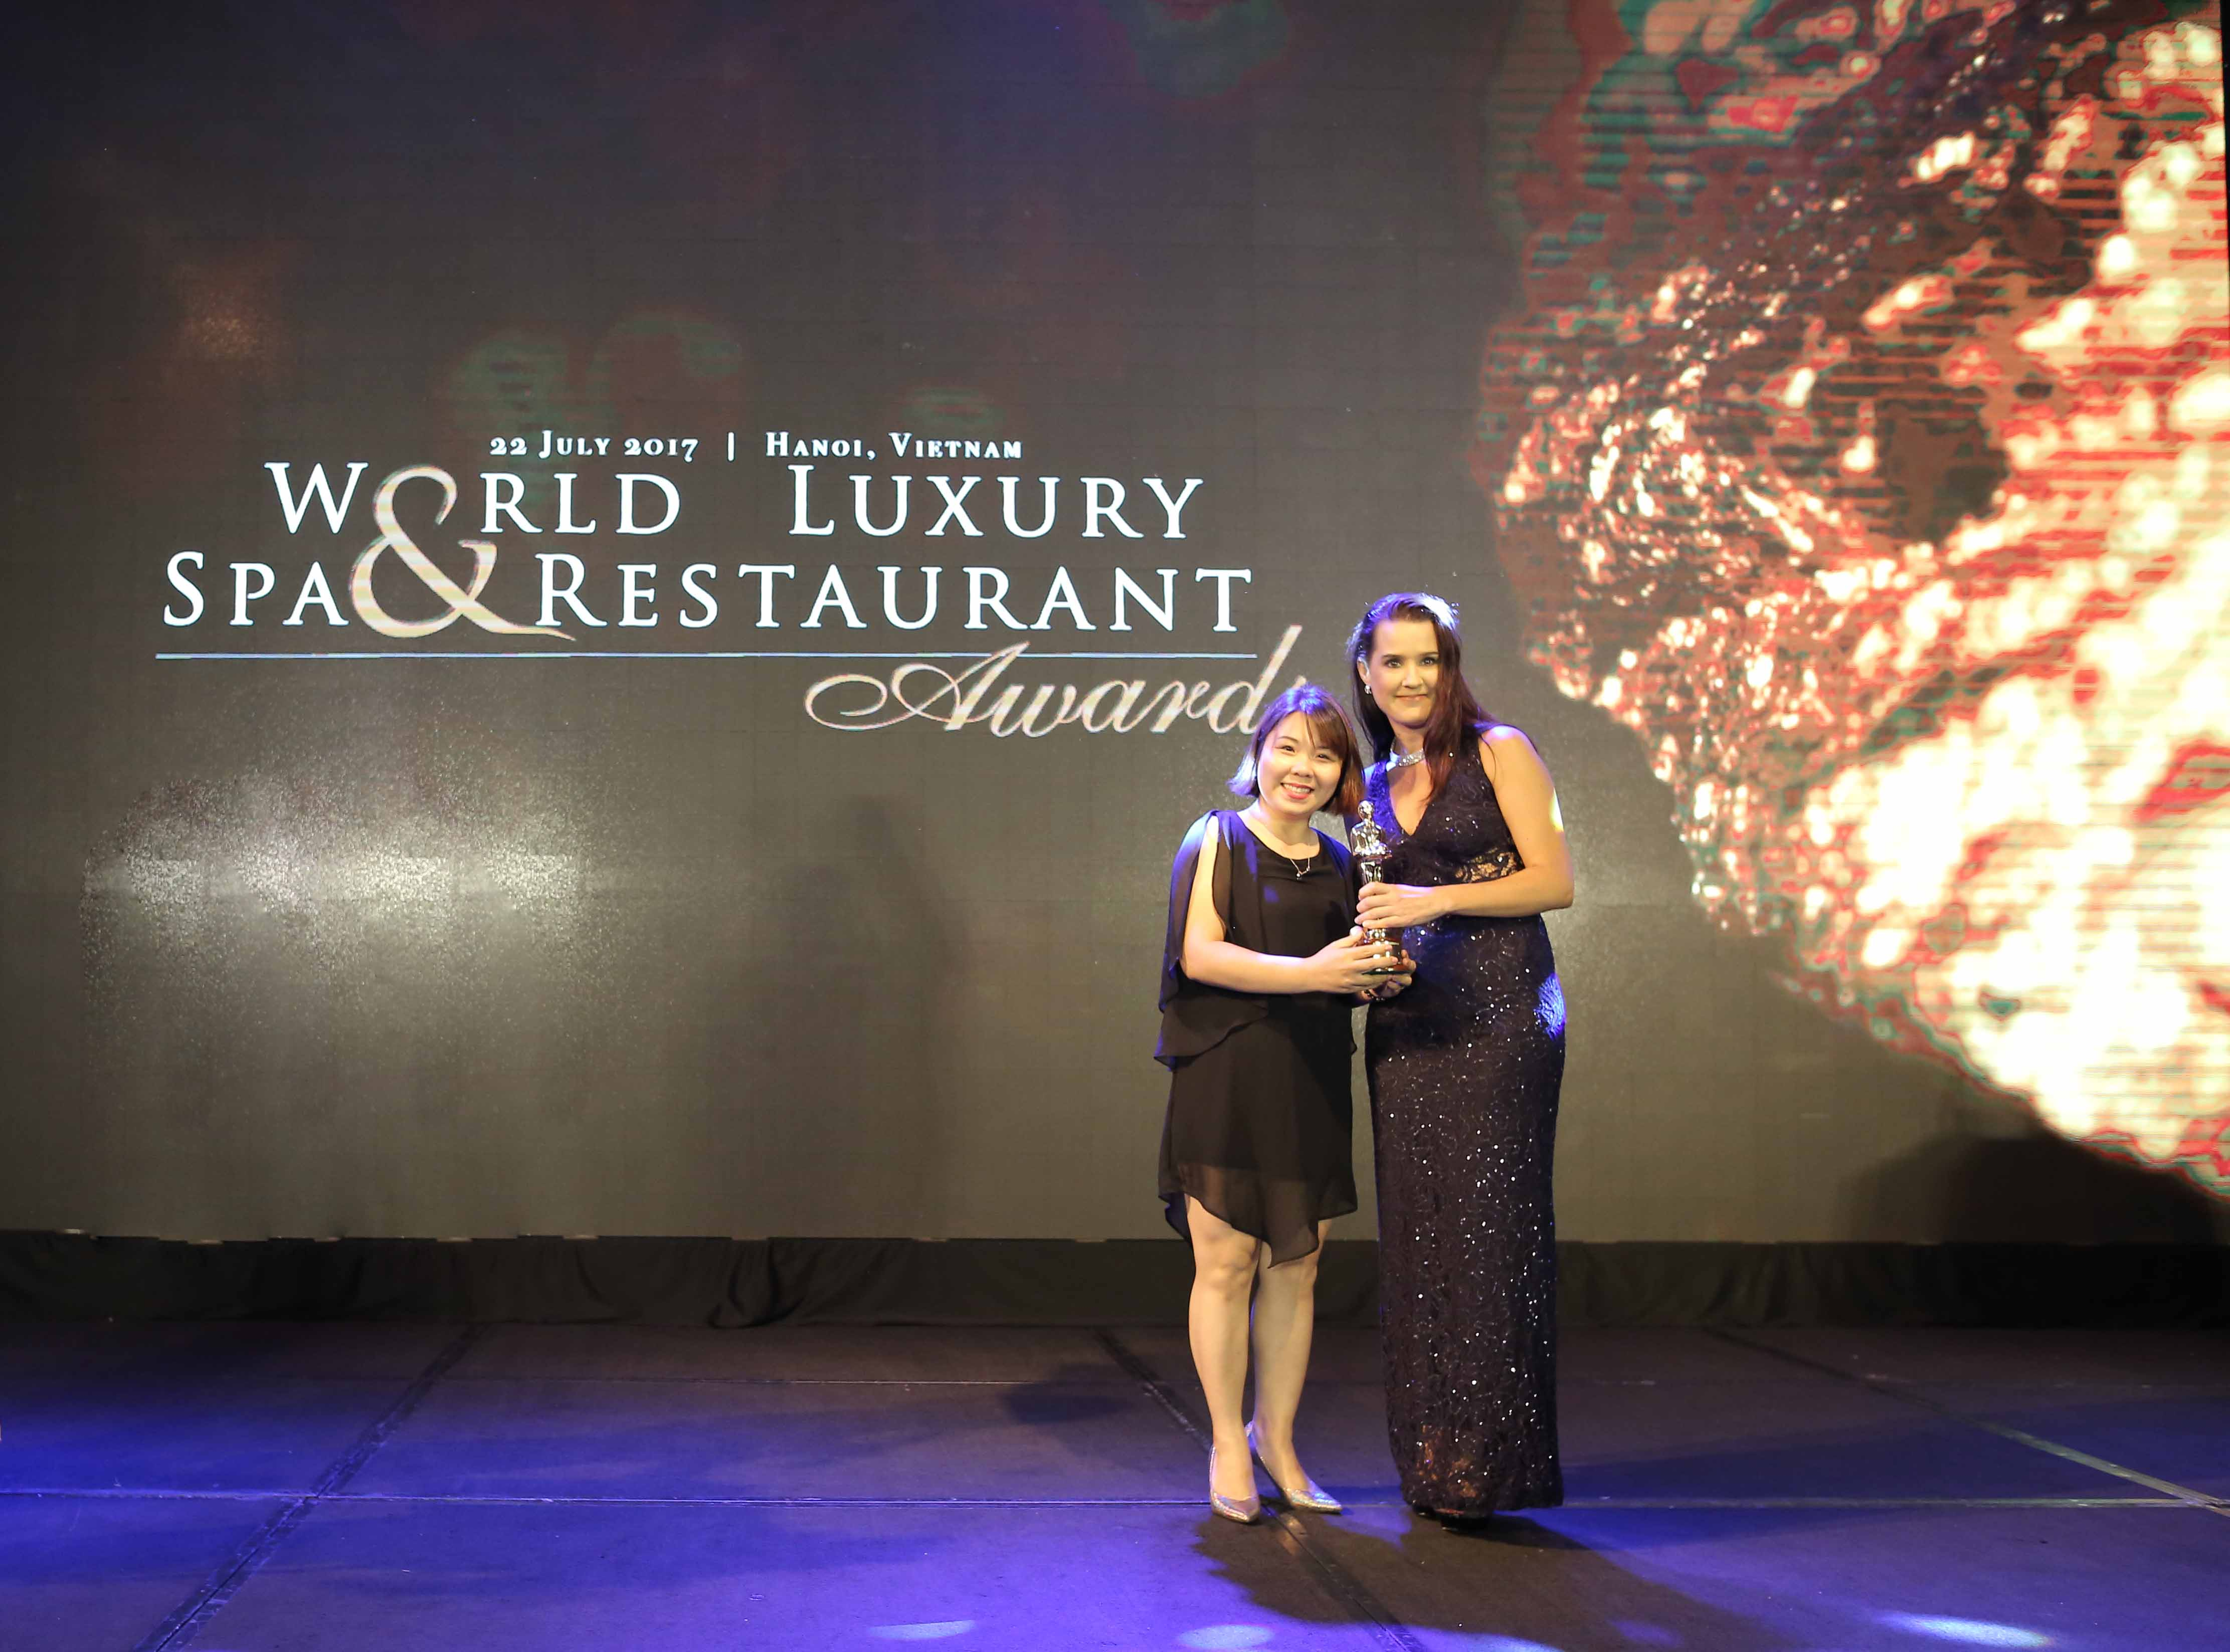 ms-dinh-thu-u-jw-caft-restaurant-manager-delighted-to-receive